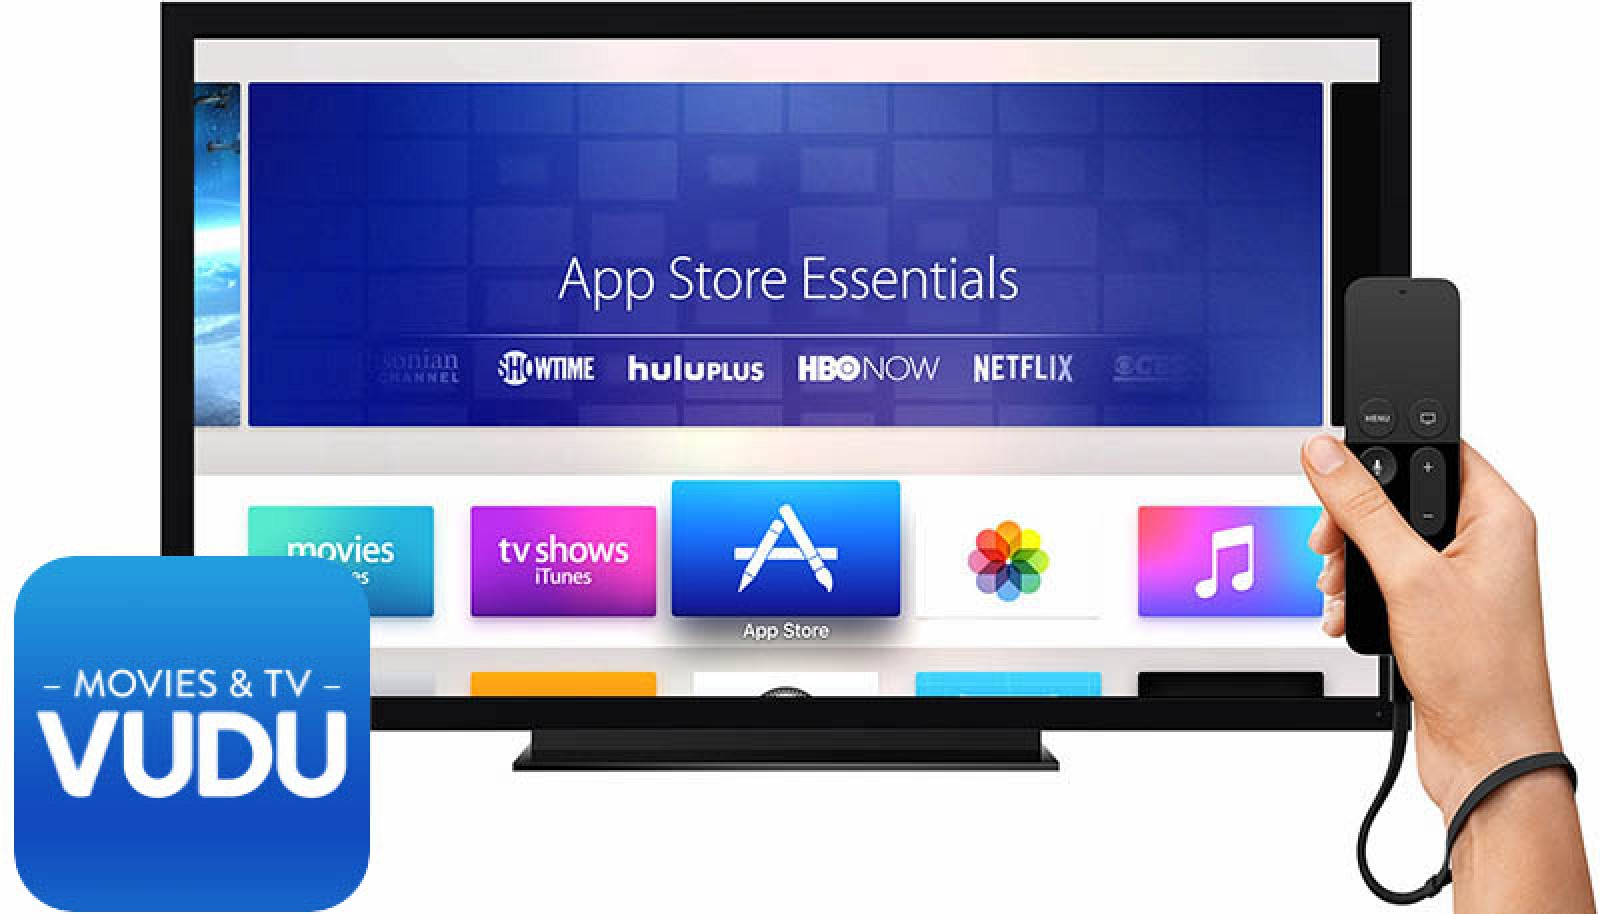 How to Install and Watch Vudu on Apple TV? - Tech Follows